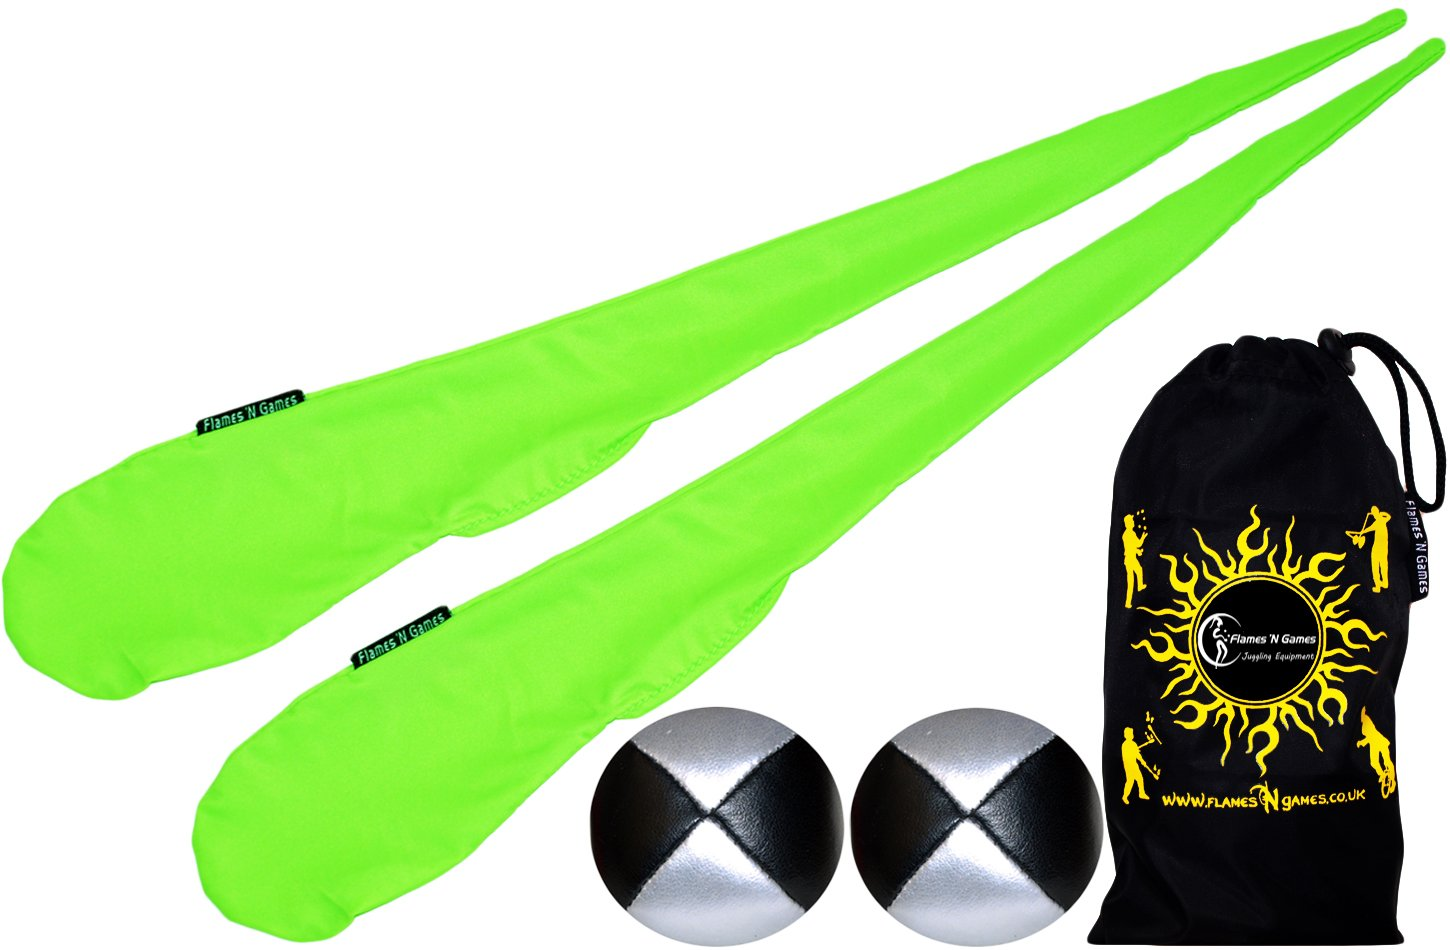 Flames N Games Sock Poi Set GREEN Pair of Quality Stretchy Lycra Spinning Poi Socks 2x90g Balls Travel Bag.